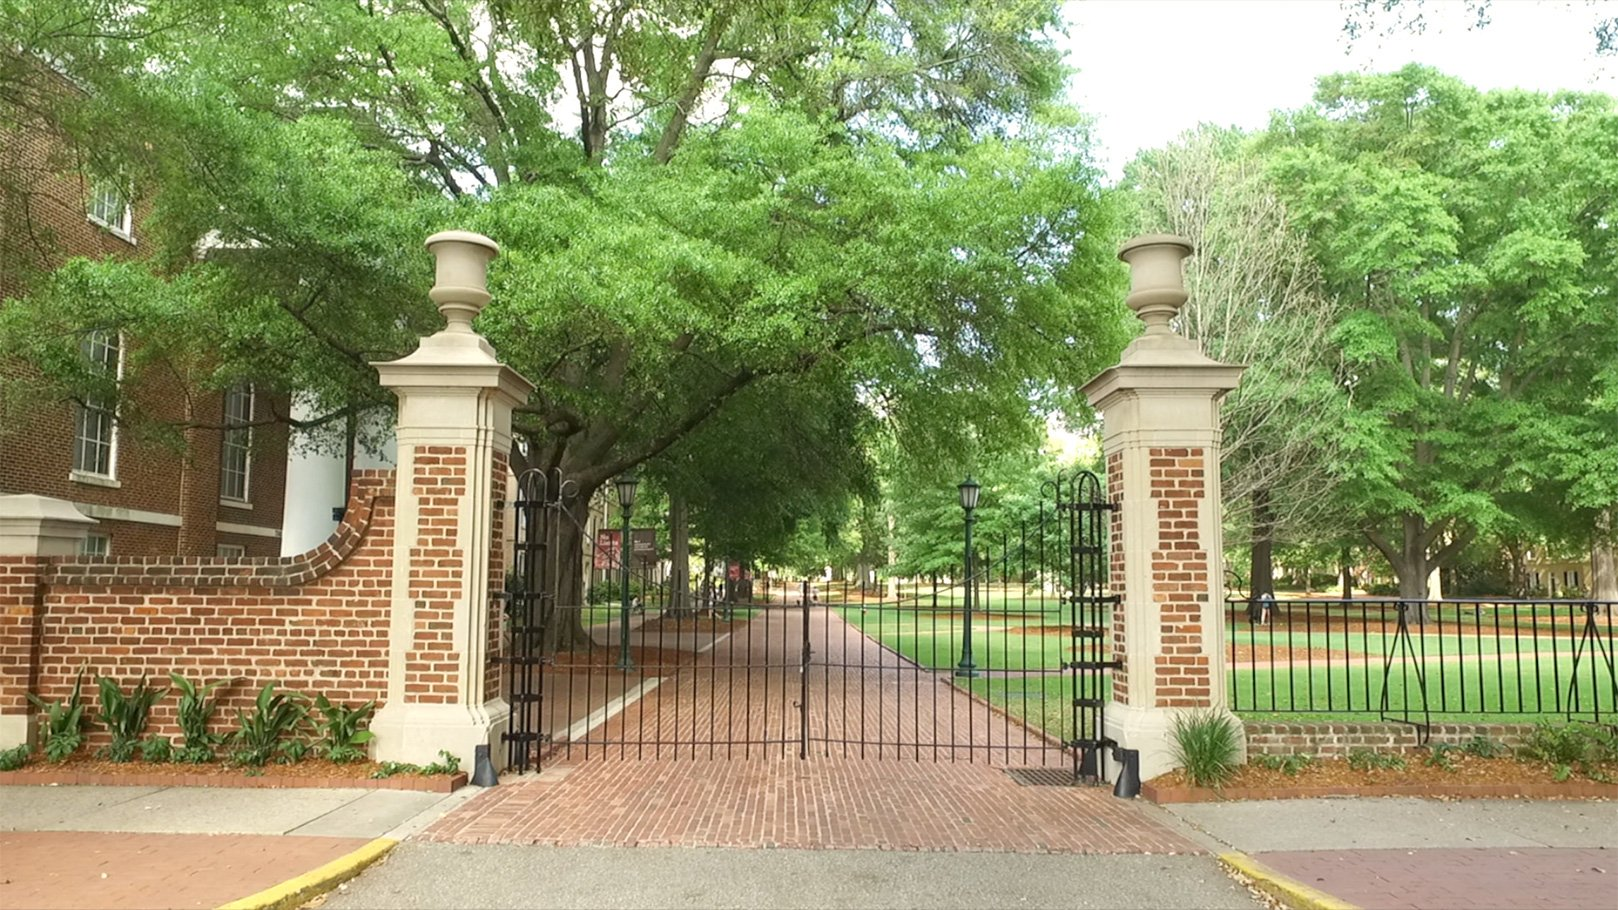 Entrance to the Horseshoe with the gates closed on a beautiful day